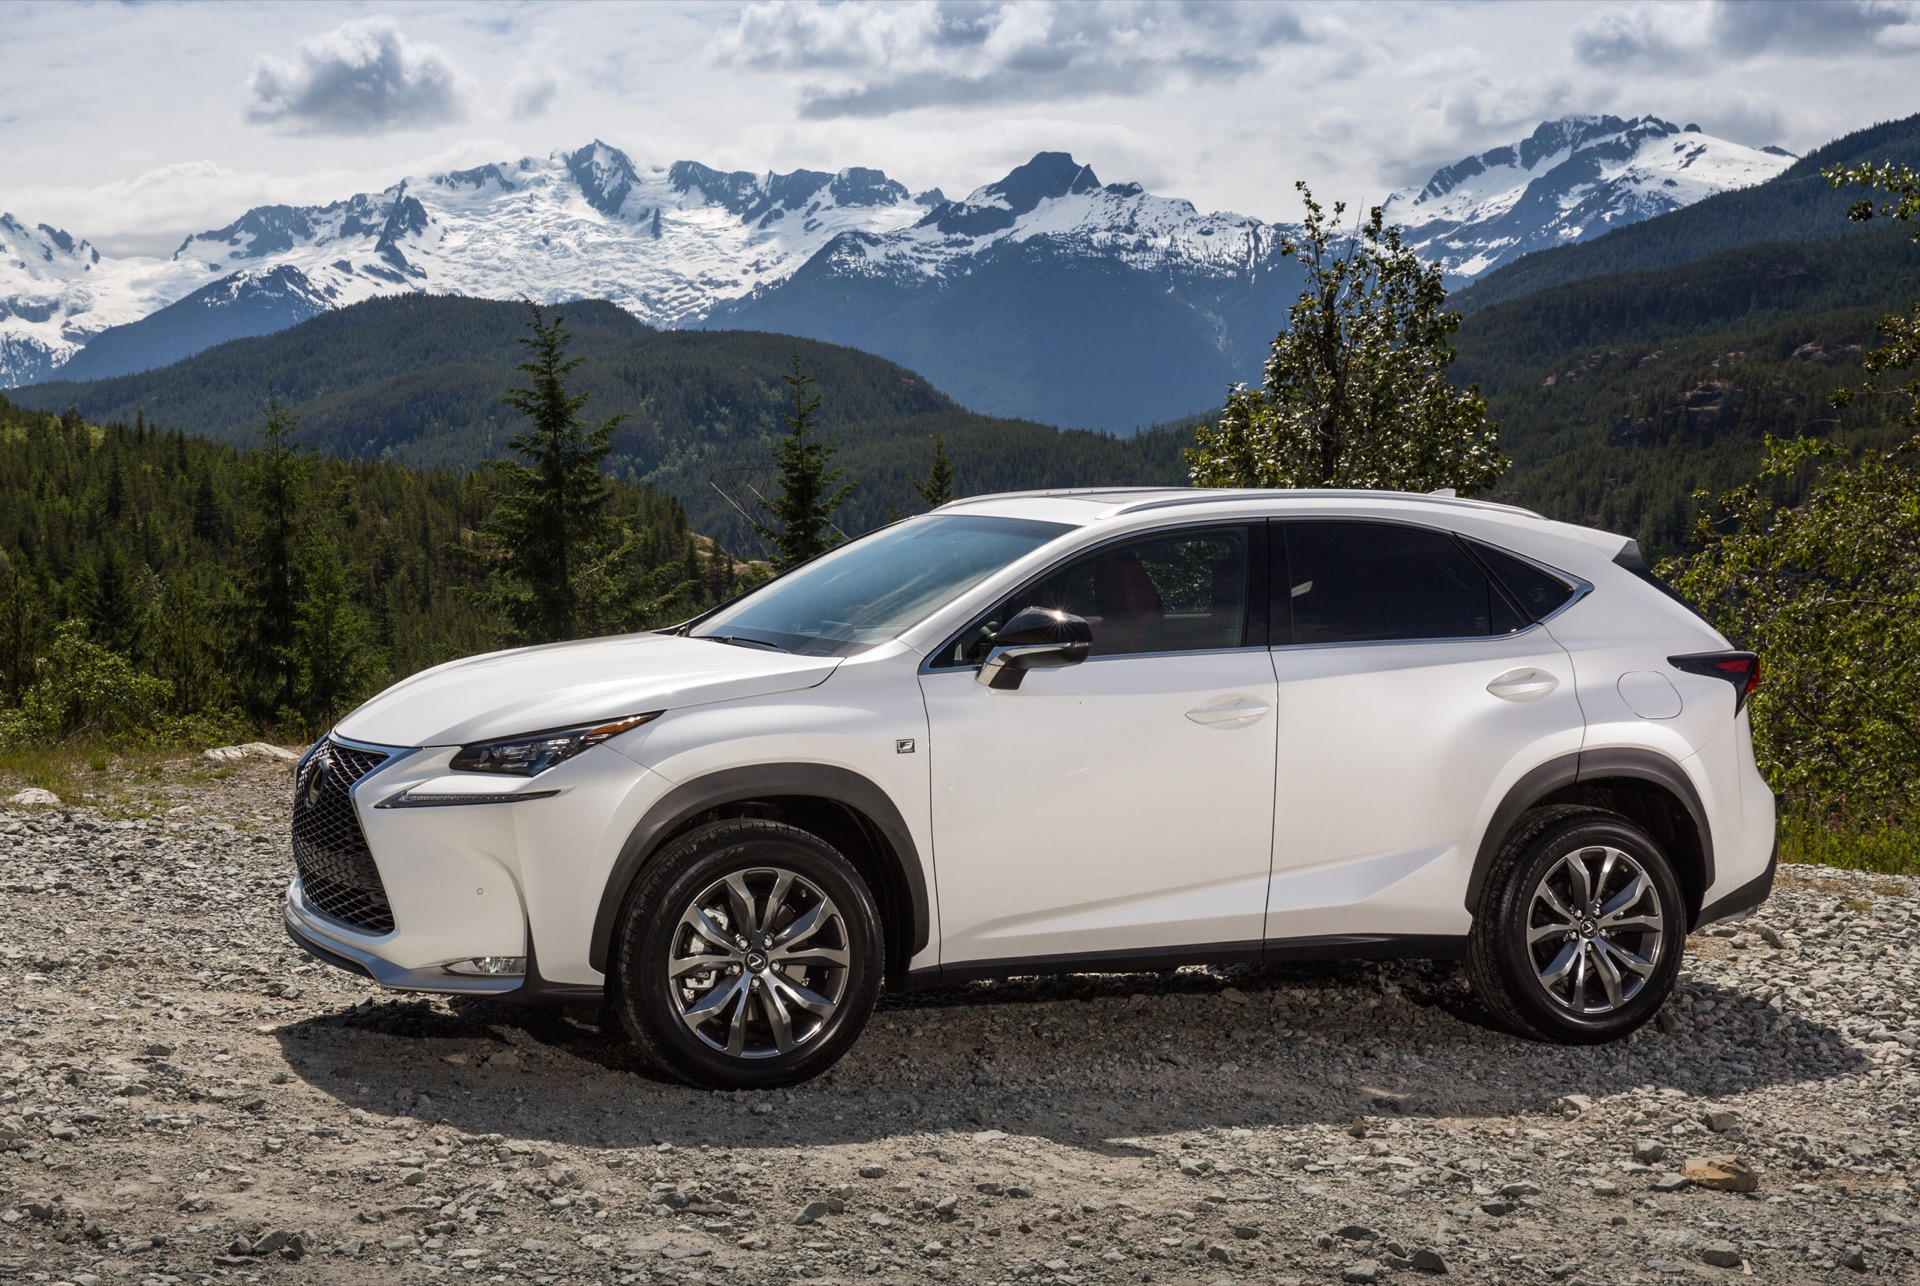 2016 Lexus NX Review, Ratings, Specs, Prices, and Photos - The Car Connection